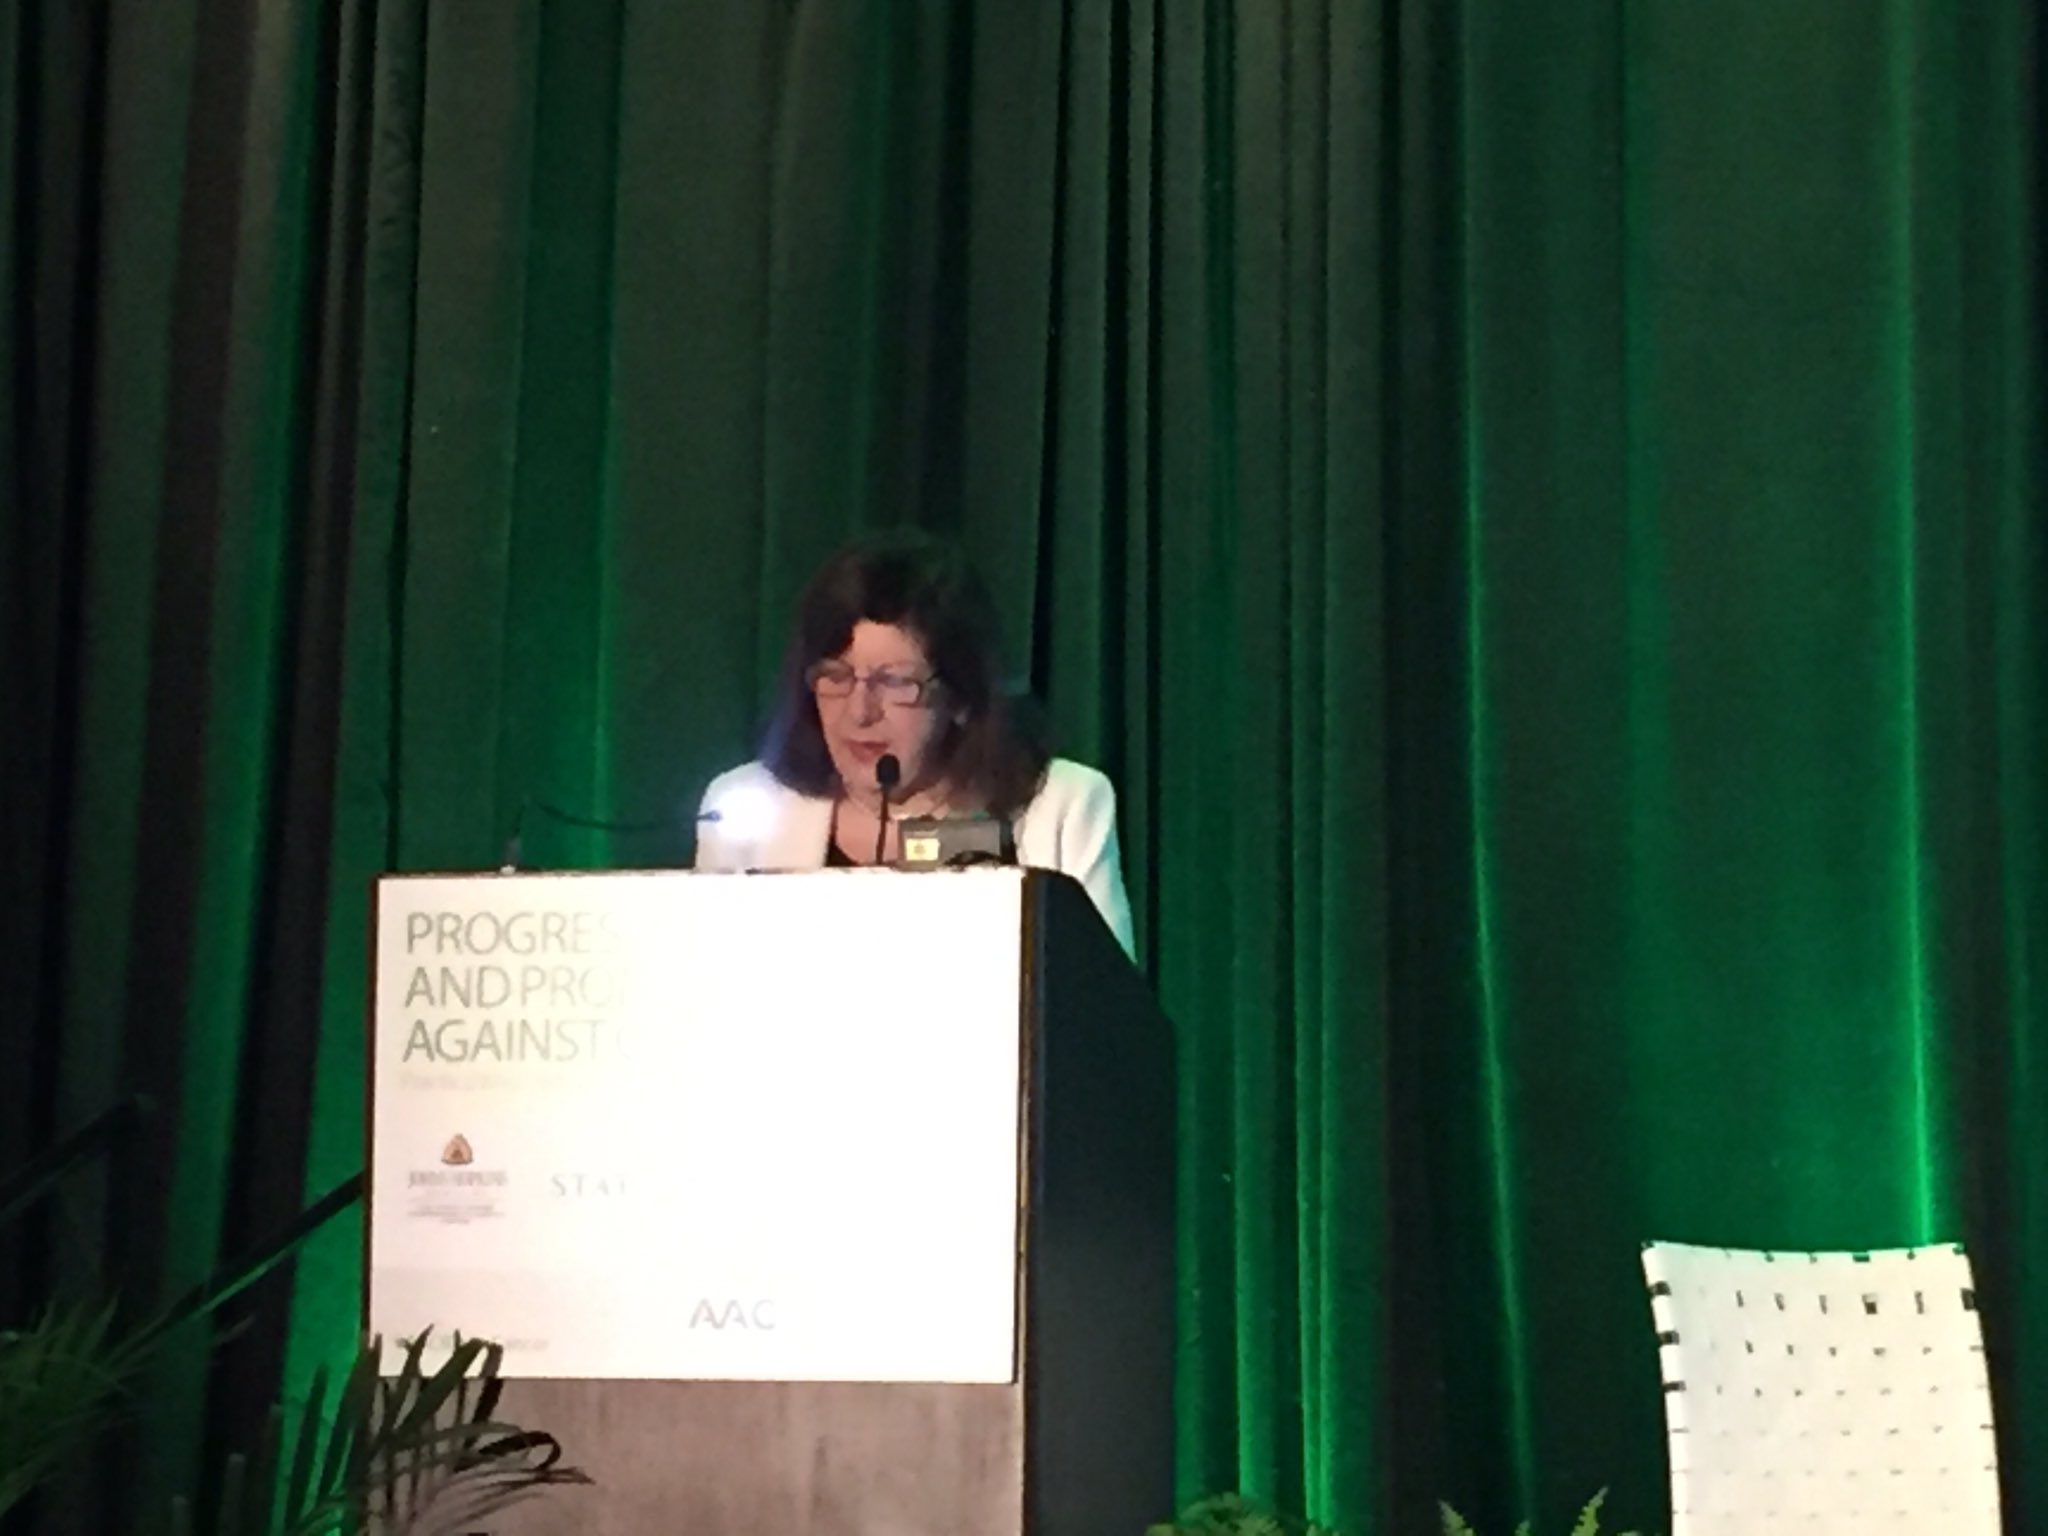 Up first in today's #AACRTalksCancer community event is AACR CEO Dr. Margaret Foti. #AACR17 https://t.co/Xg9kOtXW5A